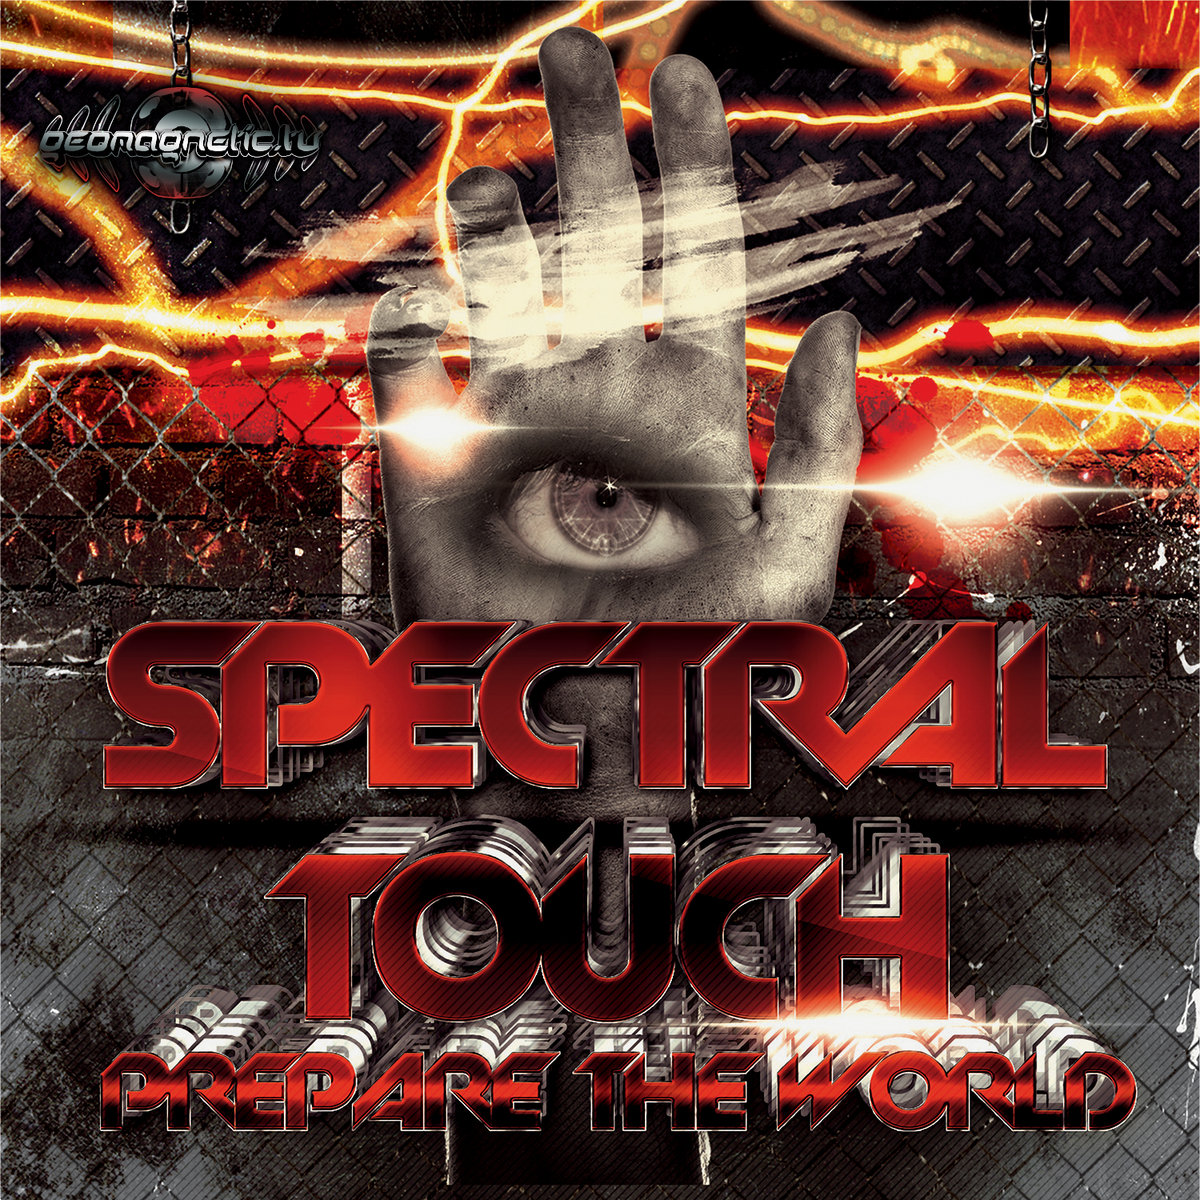 Spectral Touch - Prepare the World